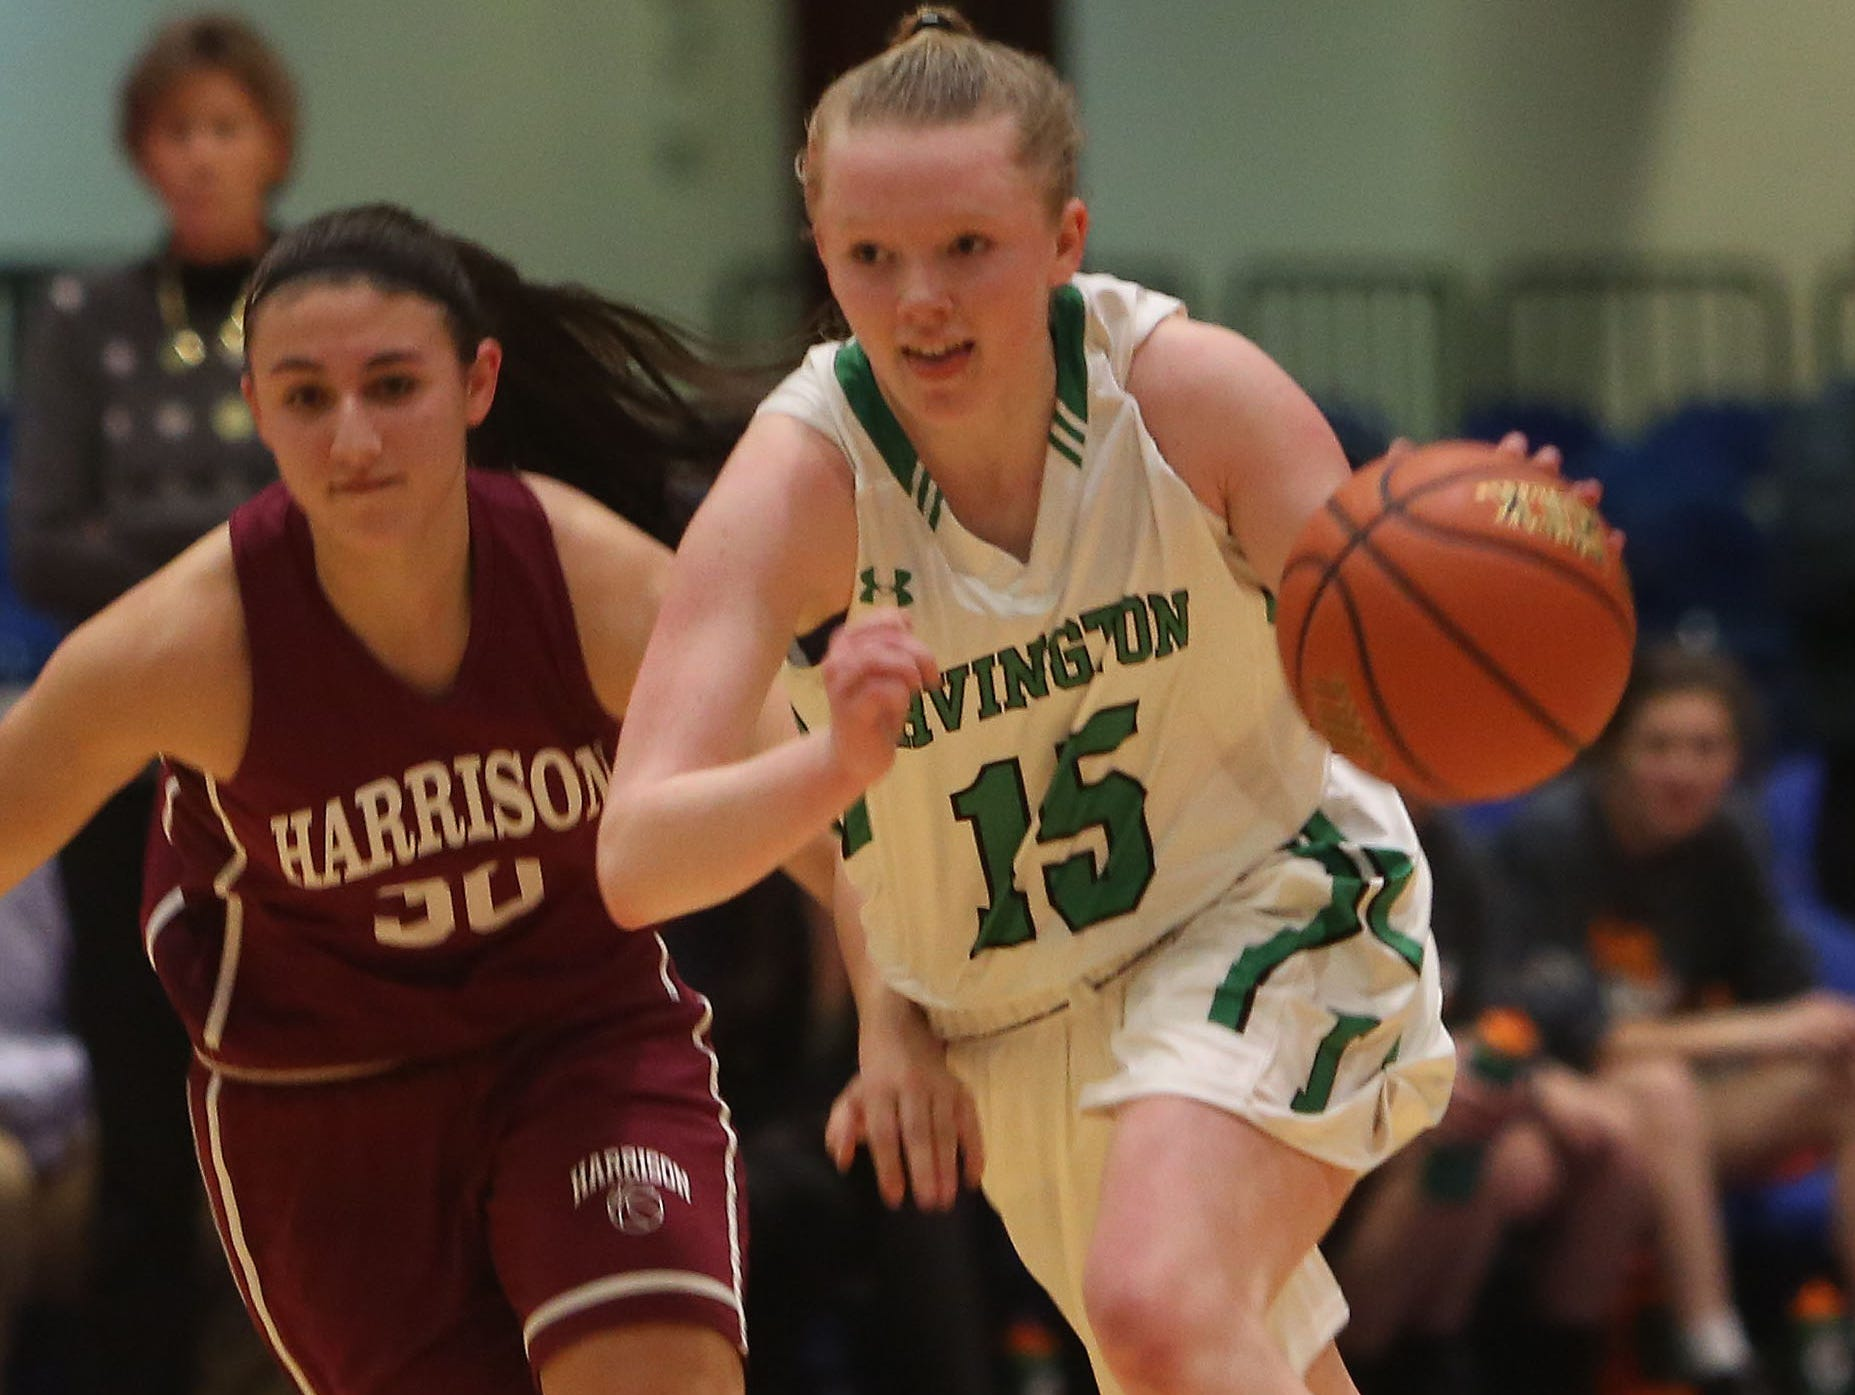 Irvington defeated Harrison 57-55 in the challenge game of the Slam Dunk Tournament at the Westchester County Center in White Plains Dec. 26, 2015.